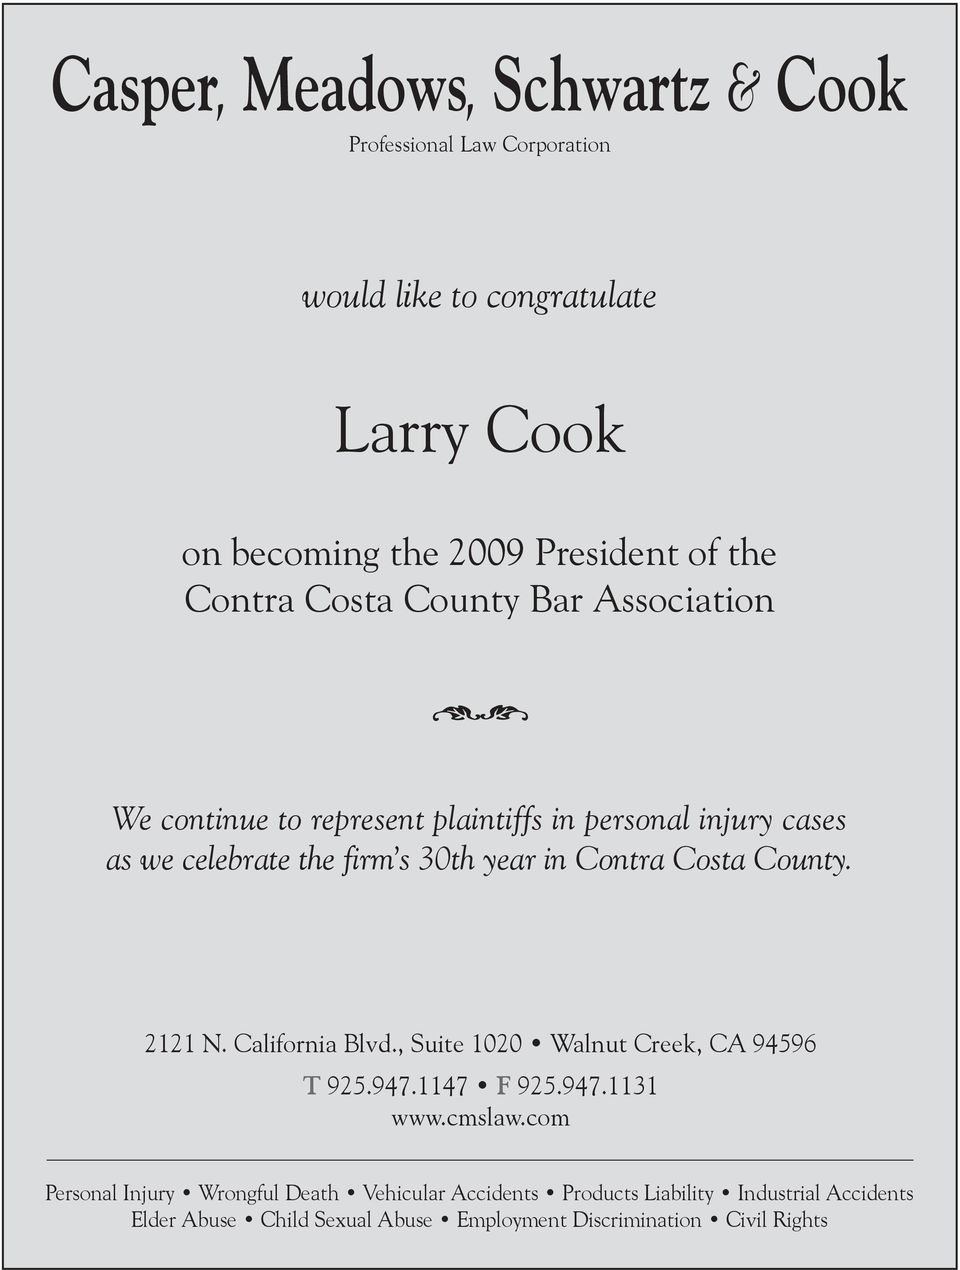 Contra Costa County. 2121 N. California Blvd., Suite 1020 Walnut Creek, CA 94596 T 925.947.1147 F 925.947.1131 www.cmslaw.